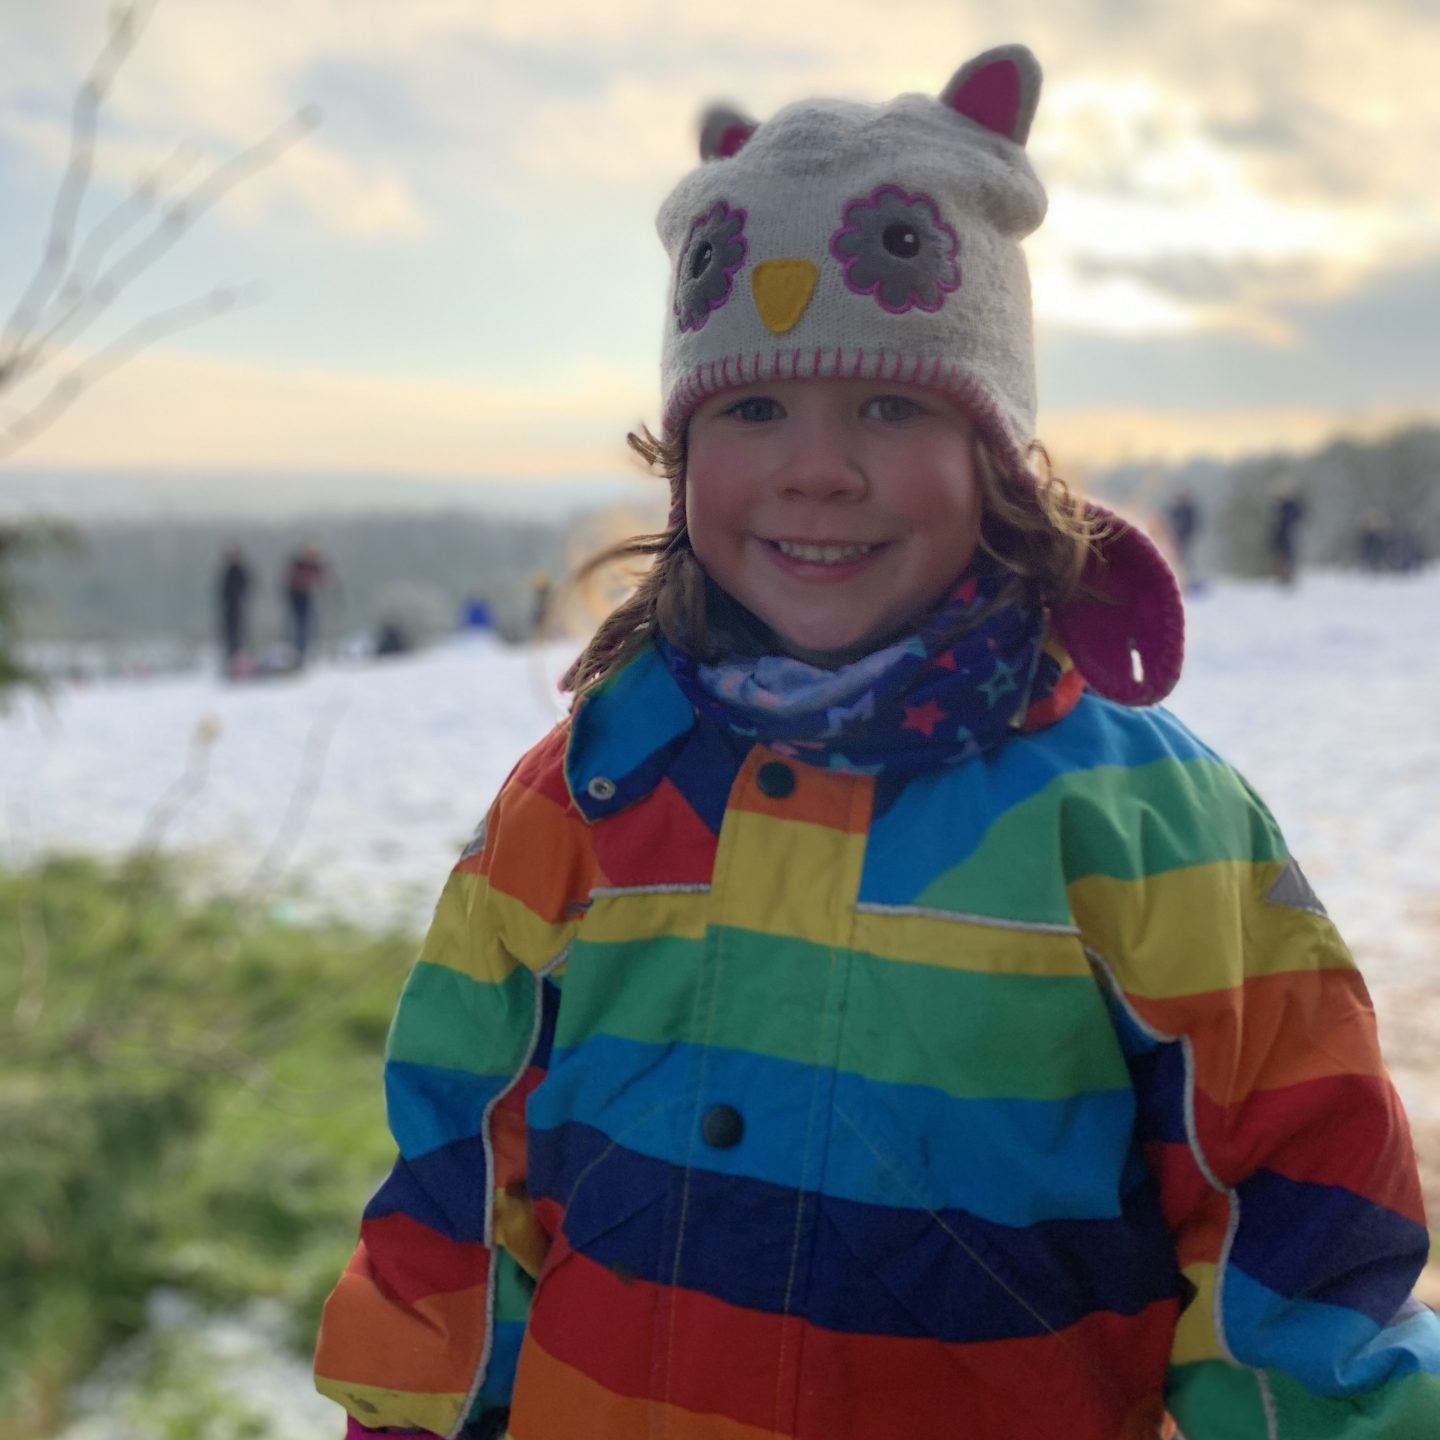 Lockdown in January with a young girl having a snow day and smiling on a snowy hill